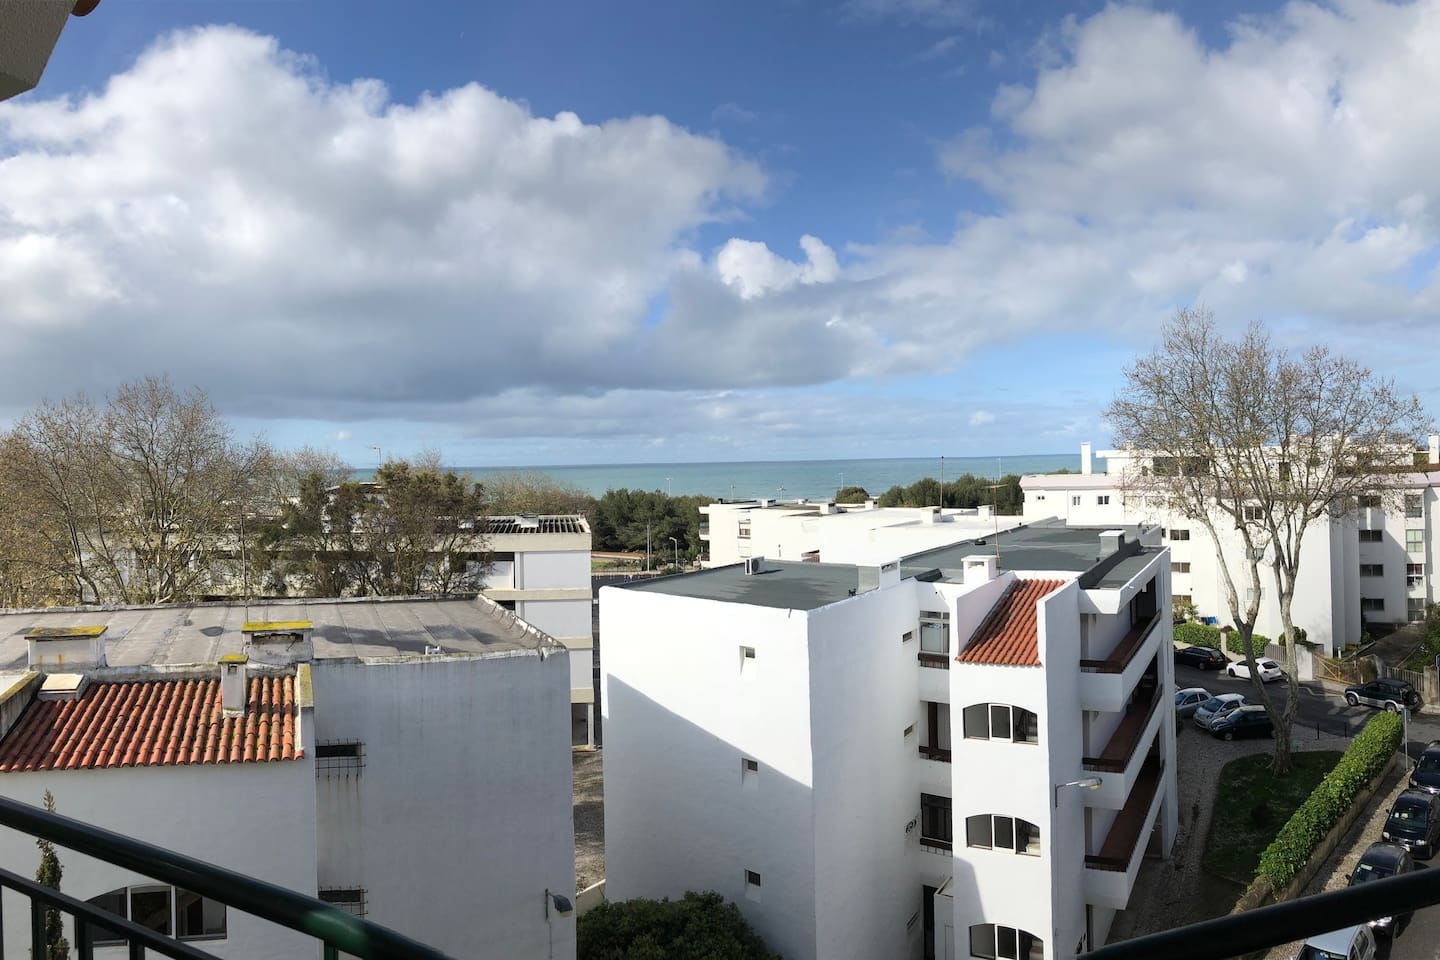 Vue from the balcony